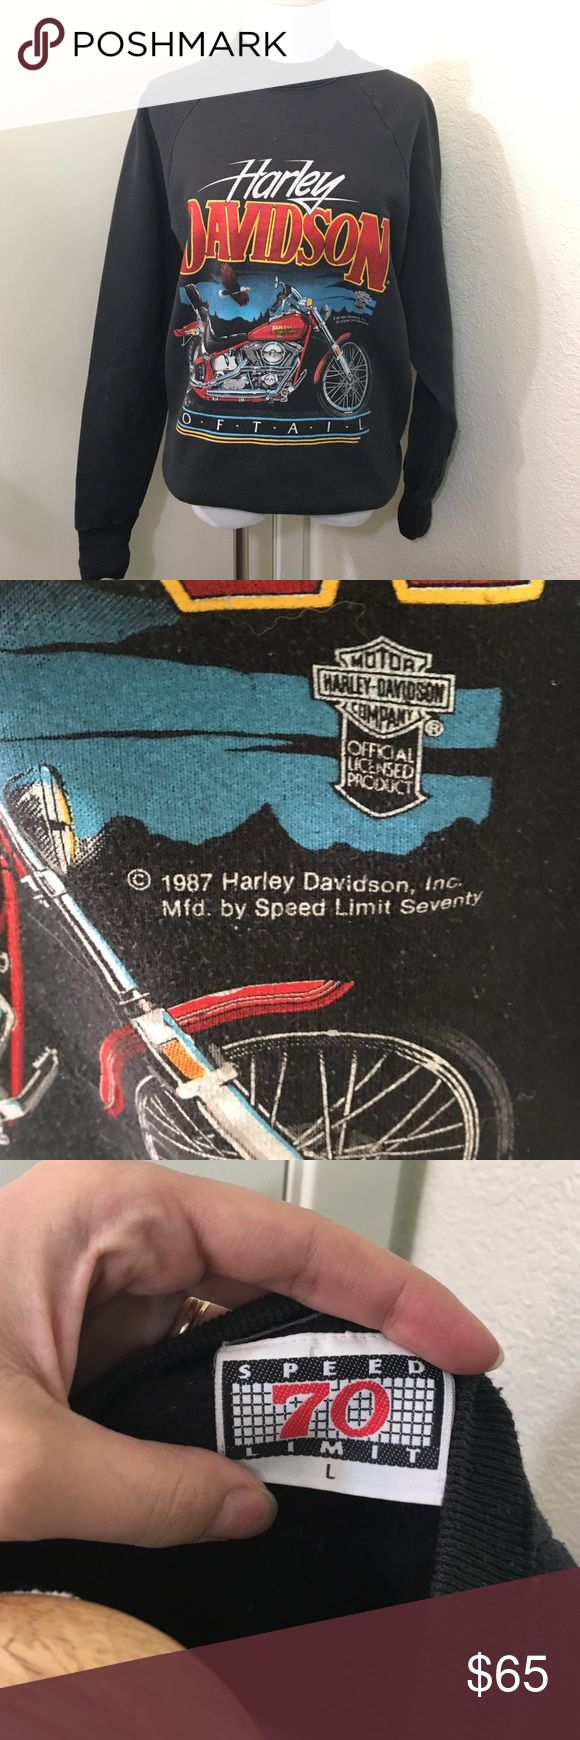 Vintage 1987 Harley Davidson Sweatshirt From the US to Australia Vintage Harley items are a must have for the fashion set and are increasingly getting harder to find. Tag says size L but fits like a woman's S/M. In good vintage condition. 🚫NO TRADES, questions from serious buyers only Harley-Davidson Tops Sweatshirts & Hoodies